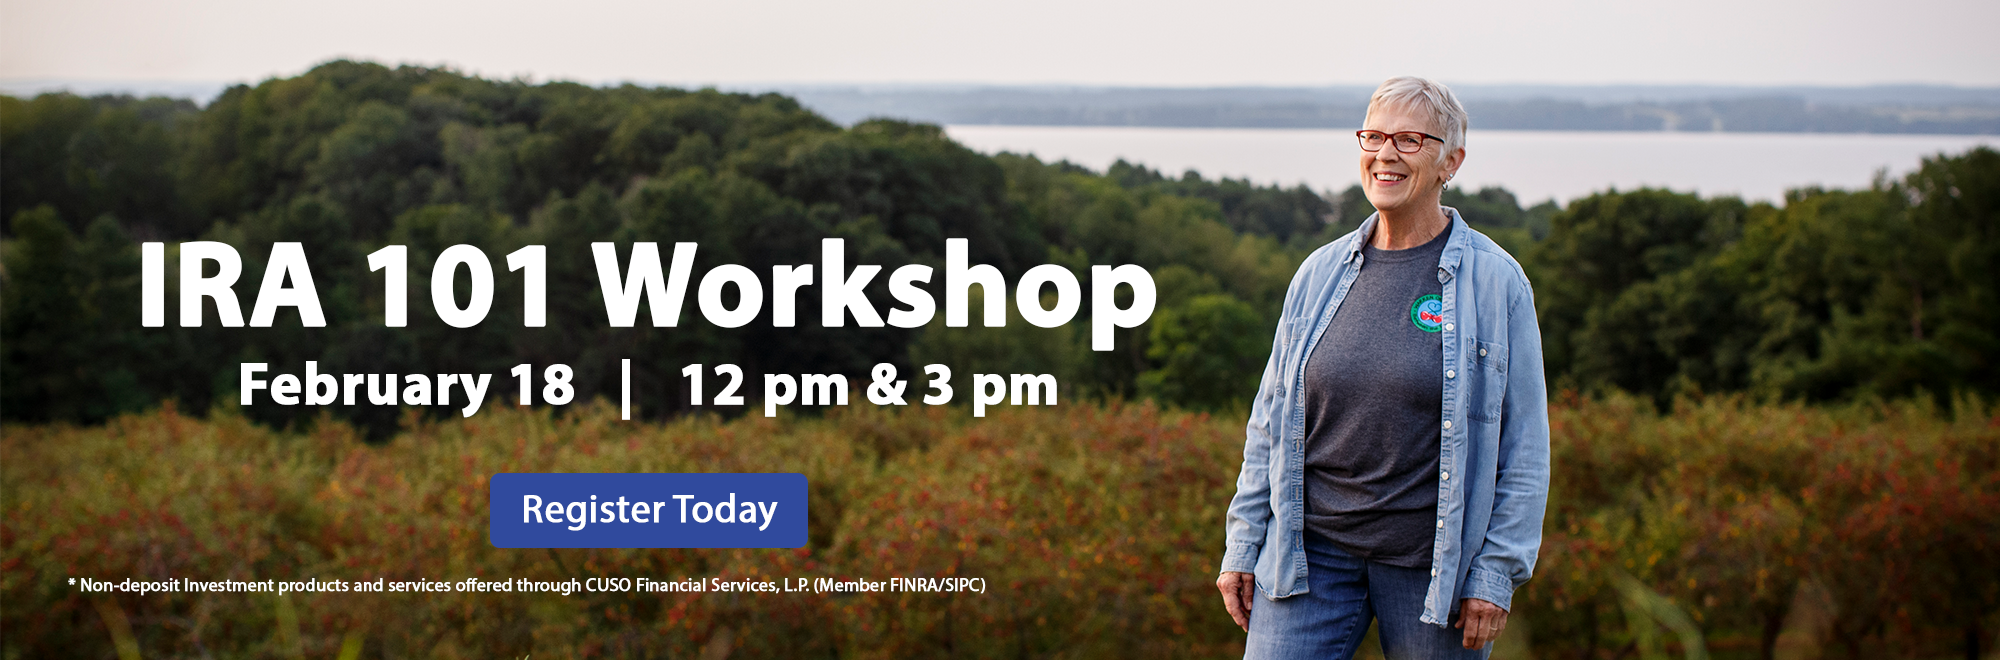 Woman smiling while standing in a field. IRA 101 Workshop. February 18. 12 pm & 3pm. Register today!